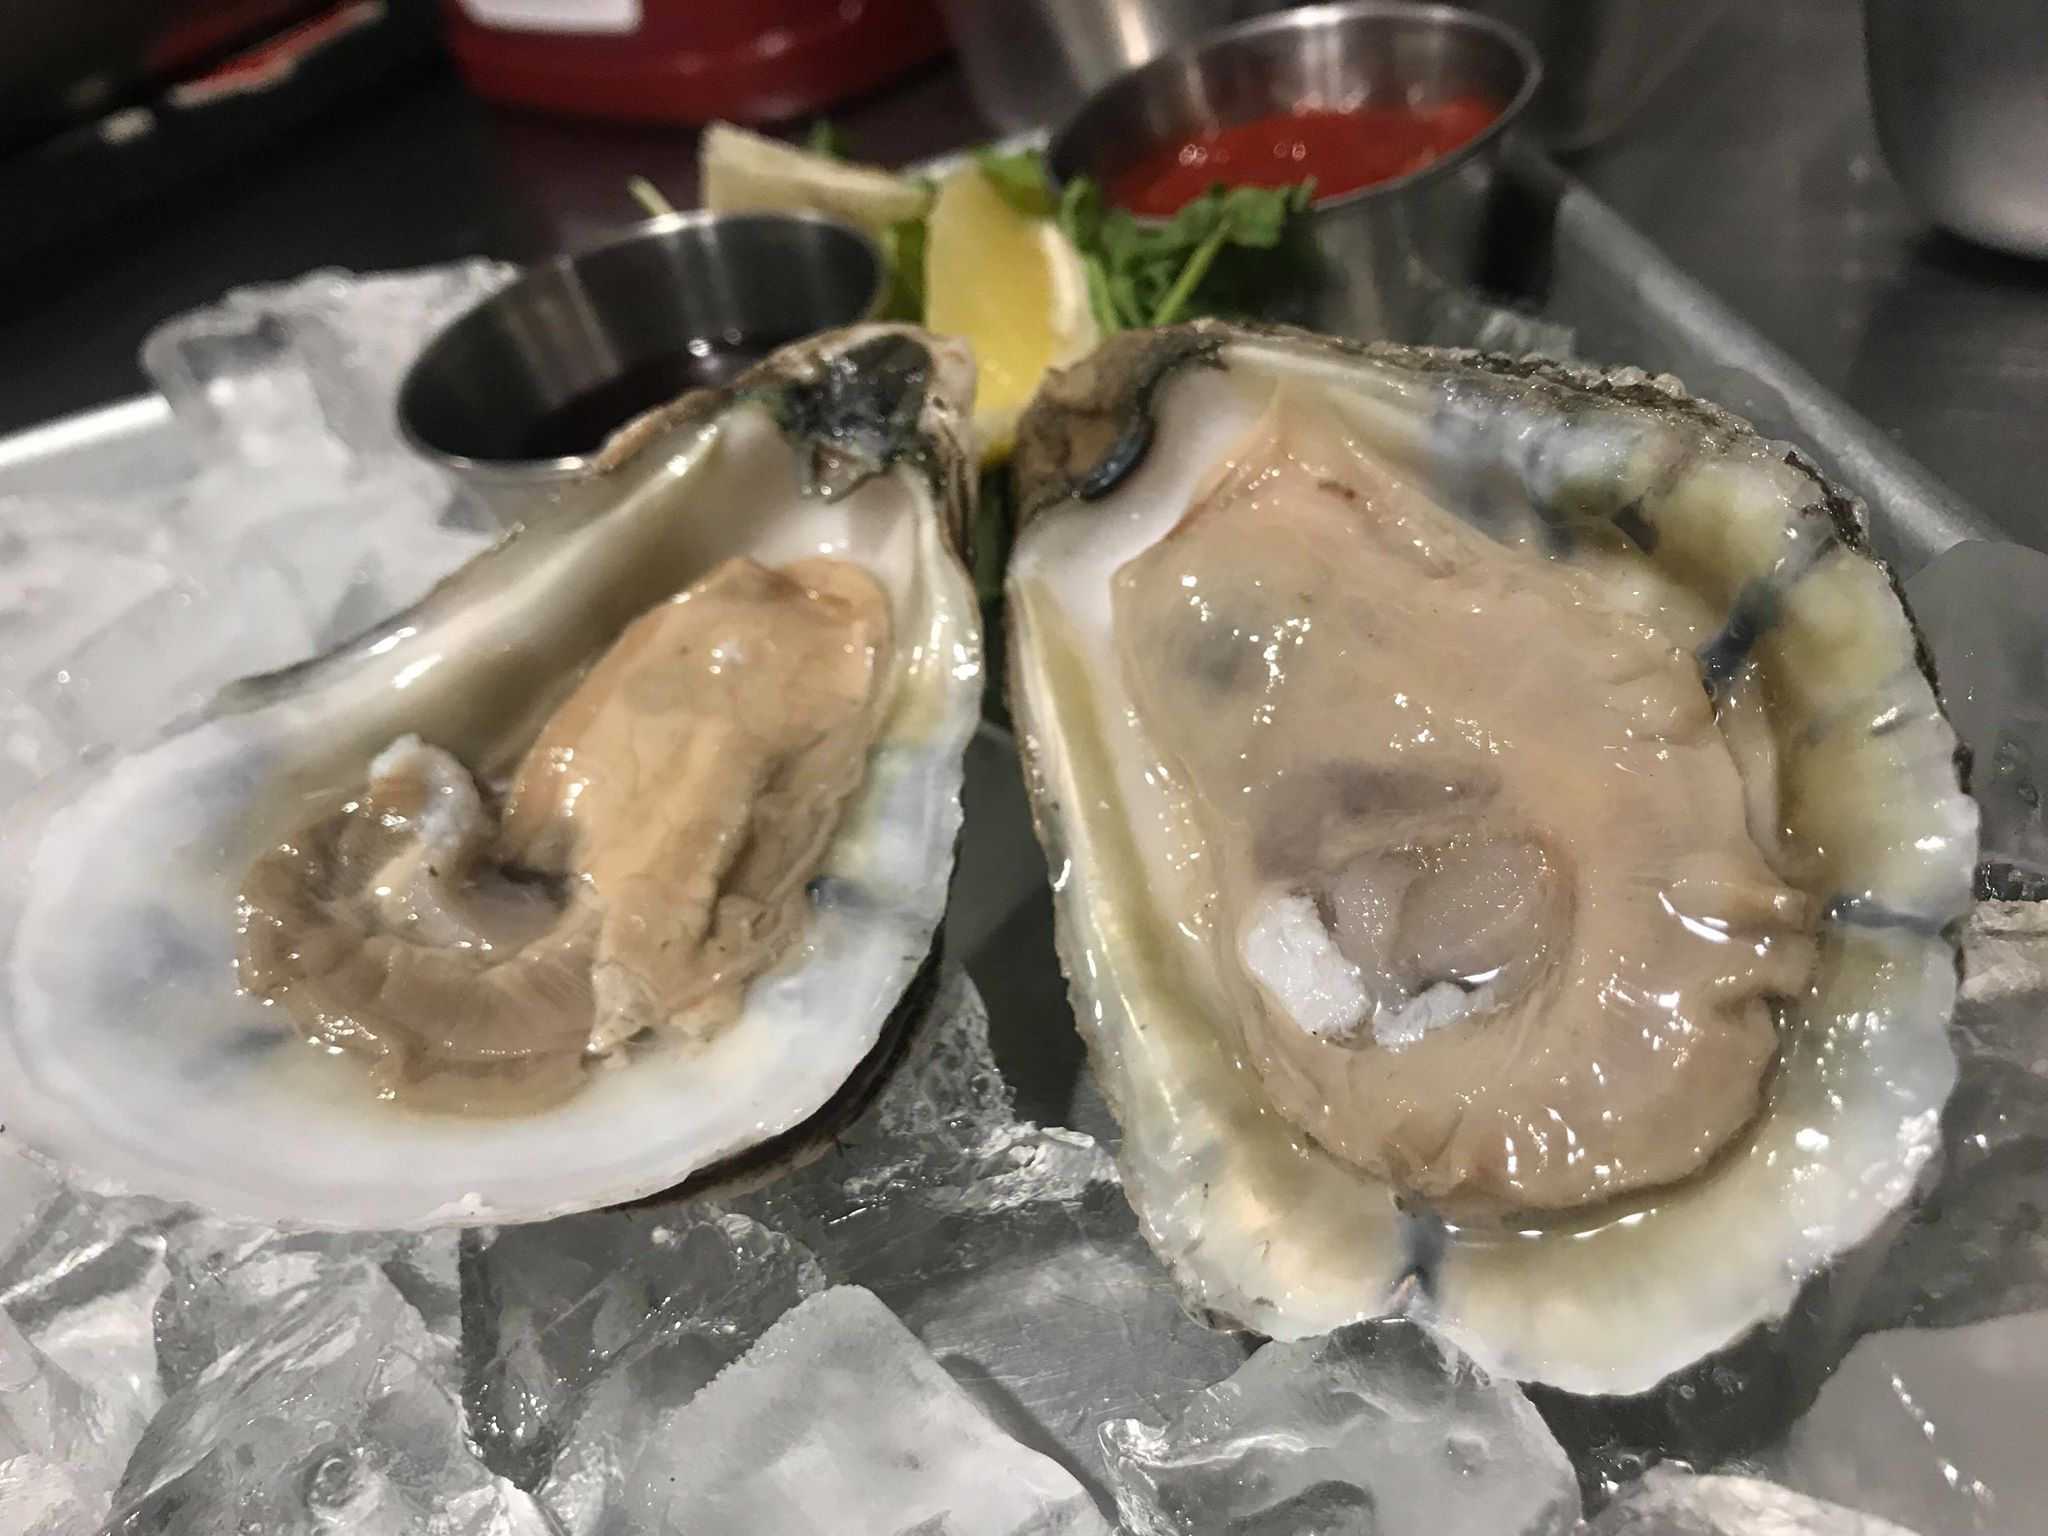 SALT WATER THURSDAY - • $1 Freshly Shucked Oysters & Clams• Chef's Seafood Specials• Irish Happy Hour 5:30-8pm. $5 Guinness, Harp & Smithwick's• Enda Keegan Live• Karaoke/Open Mic 9pm